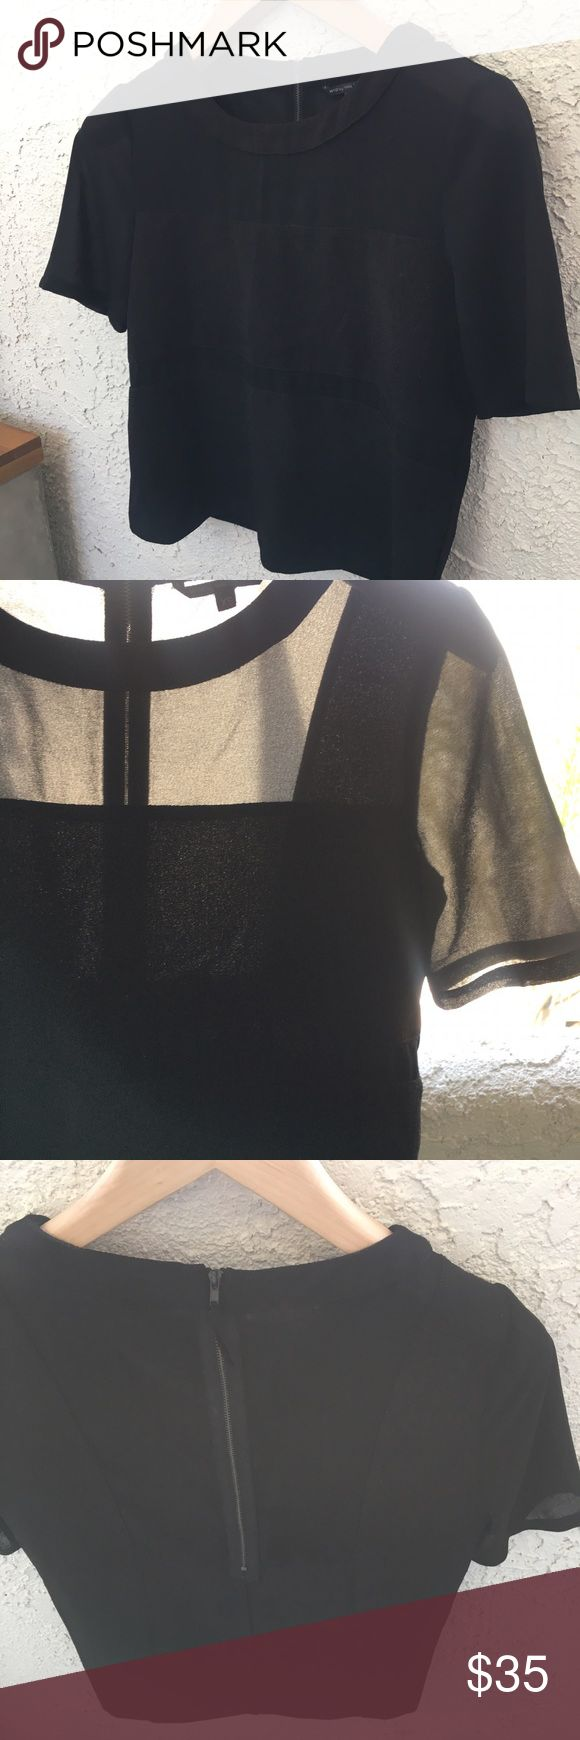 "W118 Walter Baker Modern Boxy Top, Size XS W118 Walter Baker  Modern Boxy Top Sheer/Panels Size XS Excellent Condition 20.5"" length 18"" bust  💜 Reasonable Offers Welcomed 💜 Excellent Condition 💜 No Filters Used 💜Sorry, No Trades  ✨As always thank you for shopping✨  Happy Poshing!  💜 Jenn Mix W118 by Walter Baker Tops Blouses"